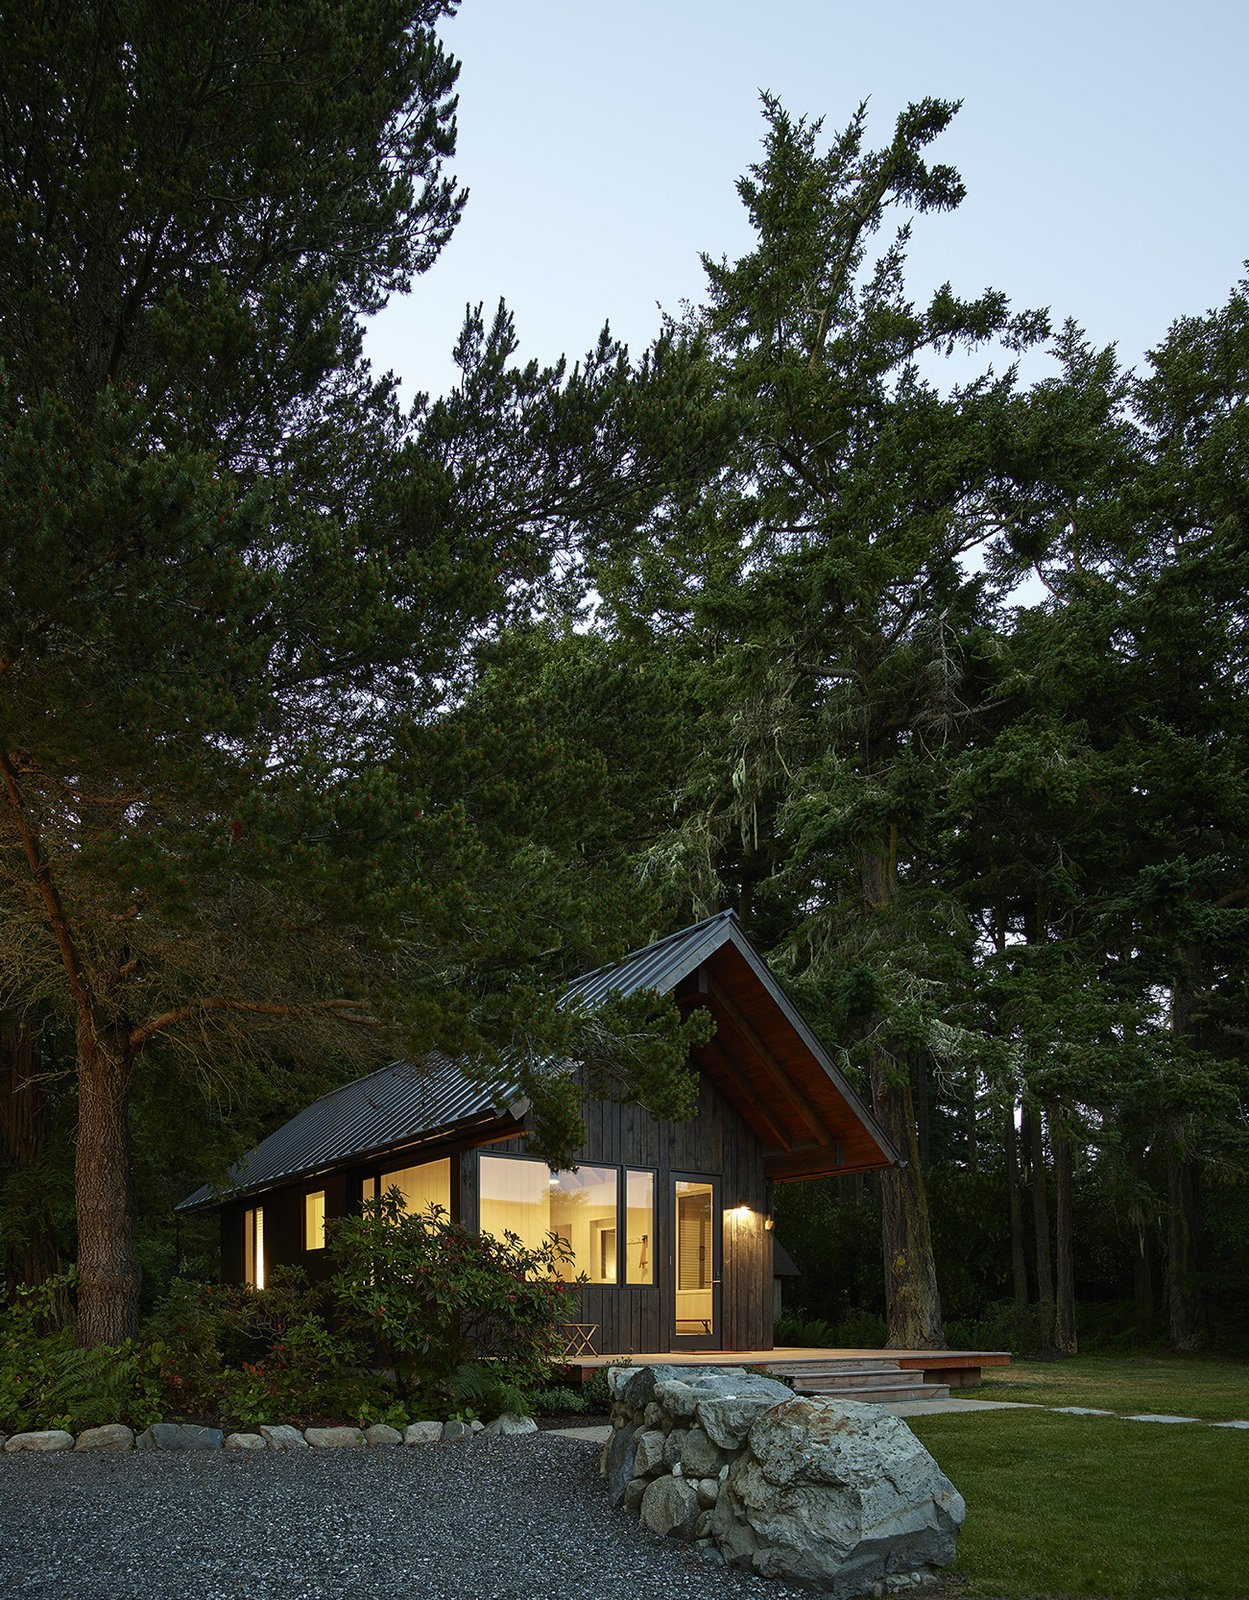 Exterior, Metal Roof Material, Wood Siding Material, Cabin Building Type, and Gable RoofLine Sleeping Cabin at dawn.  Island Cabins by goCstudio